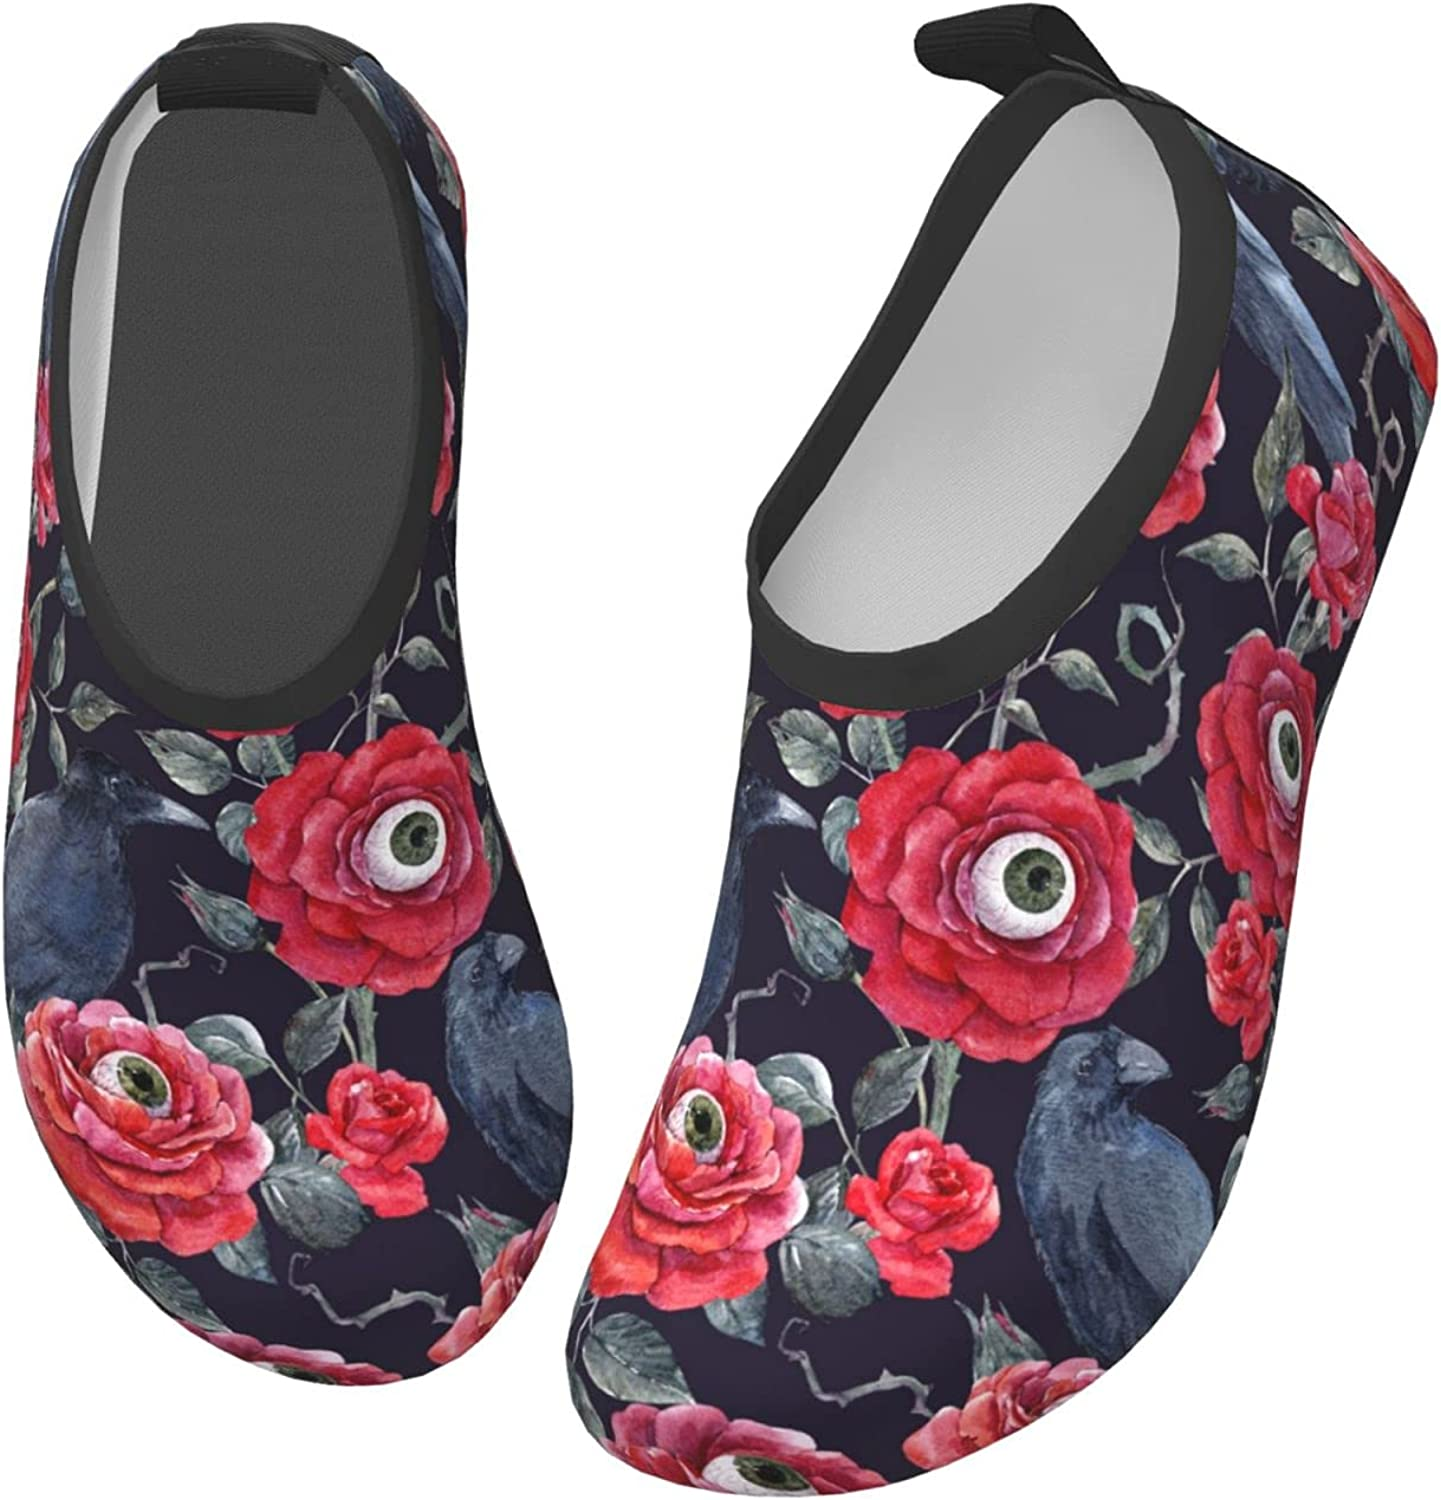 Fairy UMI Eyes of The Rose Toddler Water Shoes Non-Slip Aqua Sports Shoes Barefoot Swim Shoes Beach Surf for Boys Girls